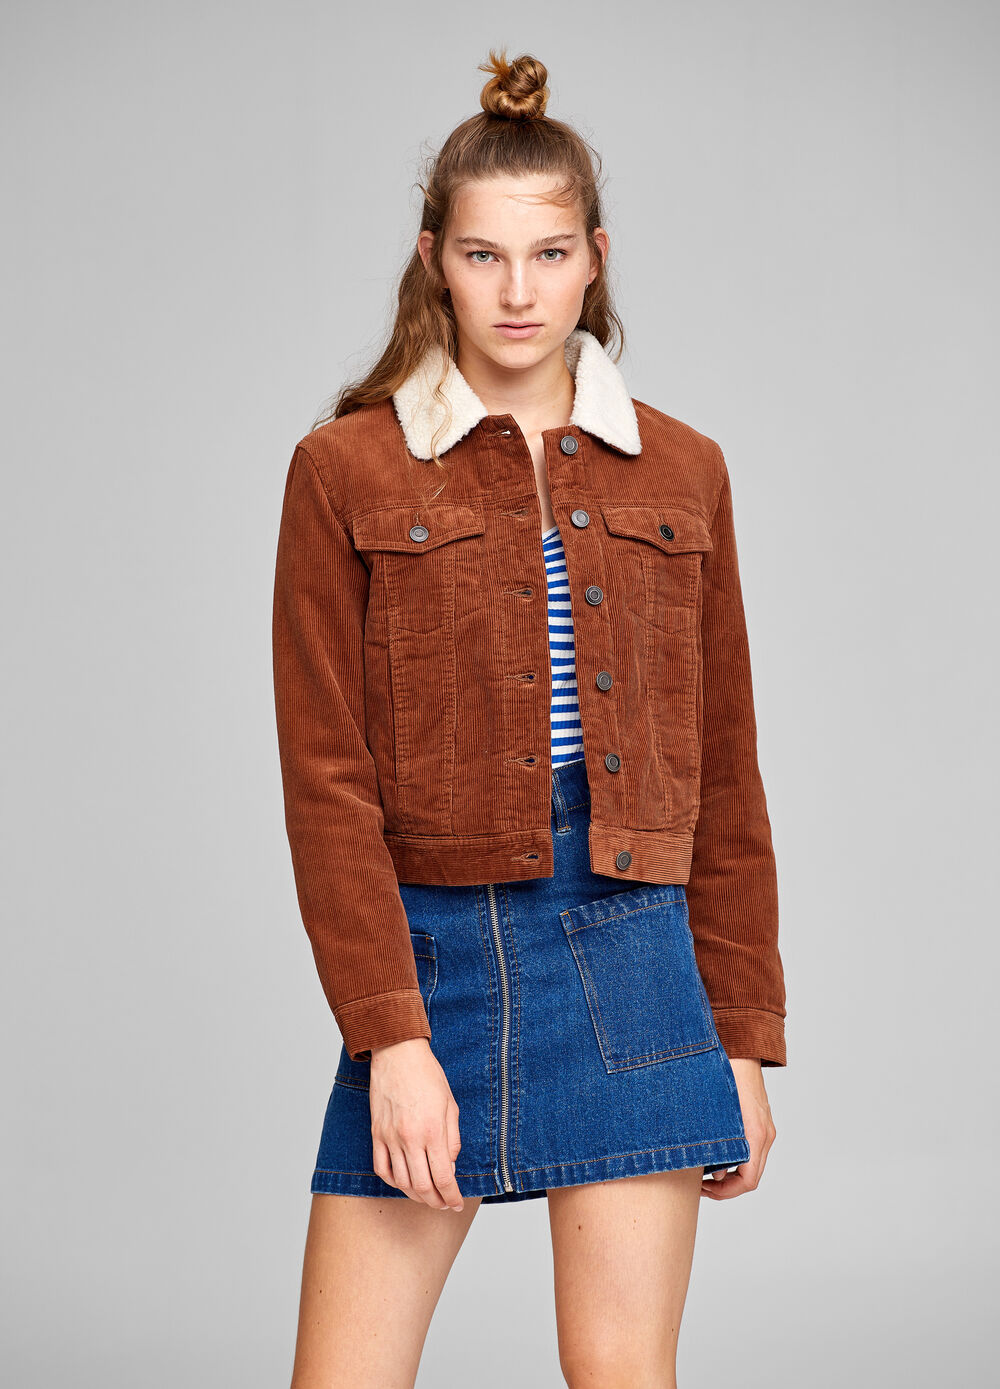 100% cotton jacket with striped weave